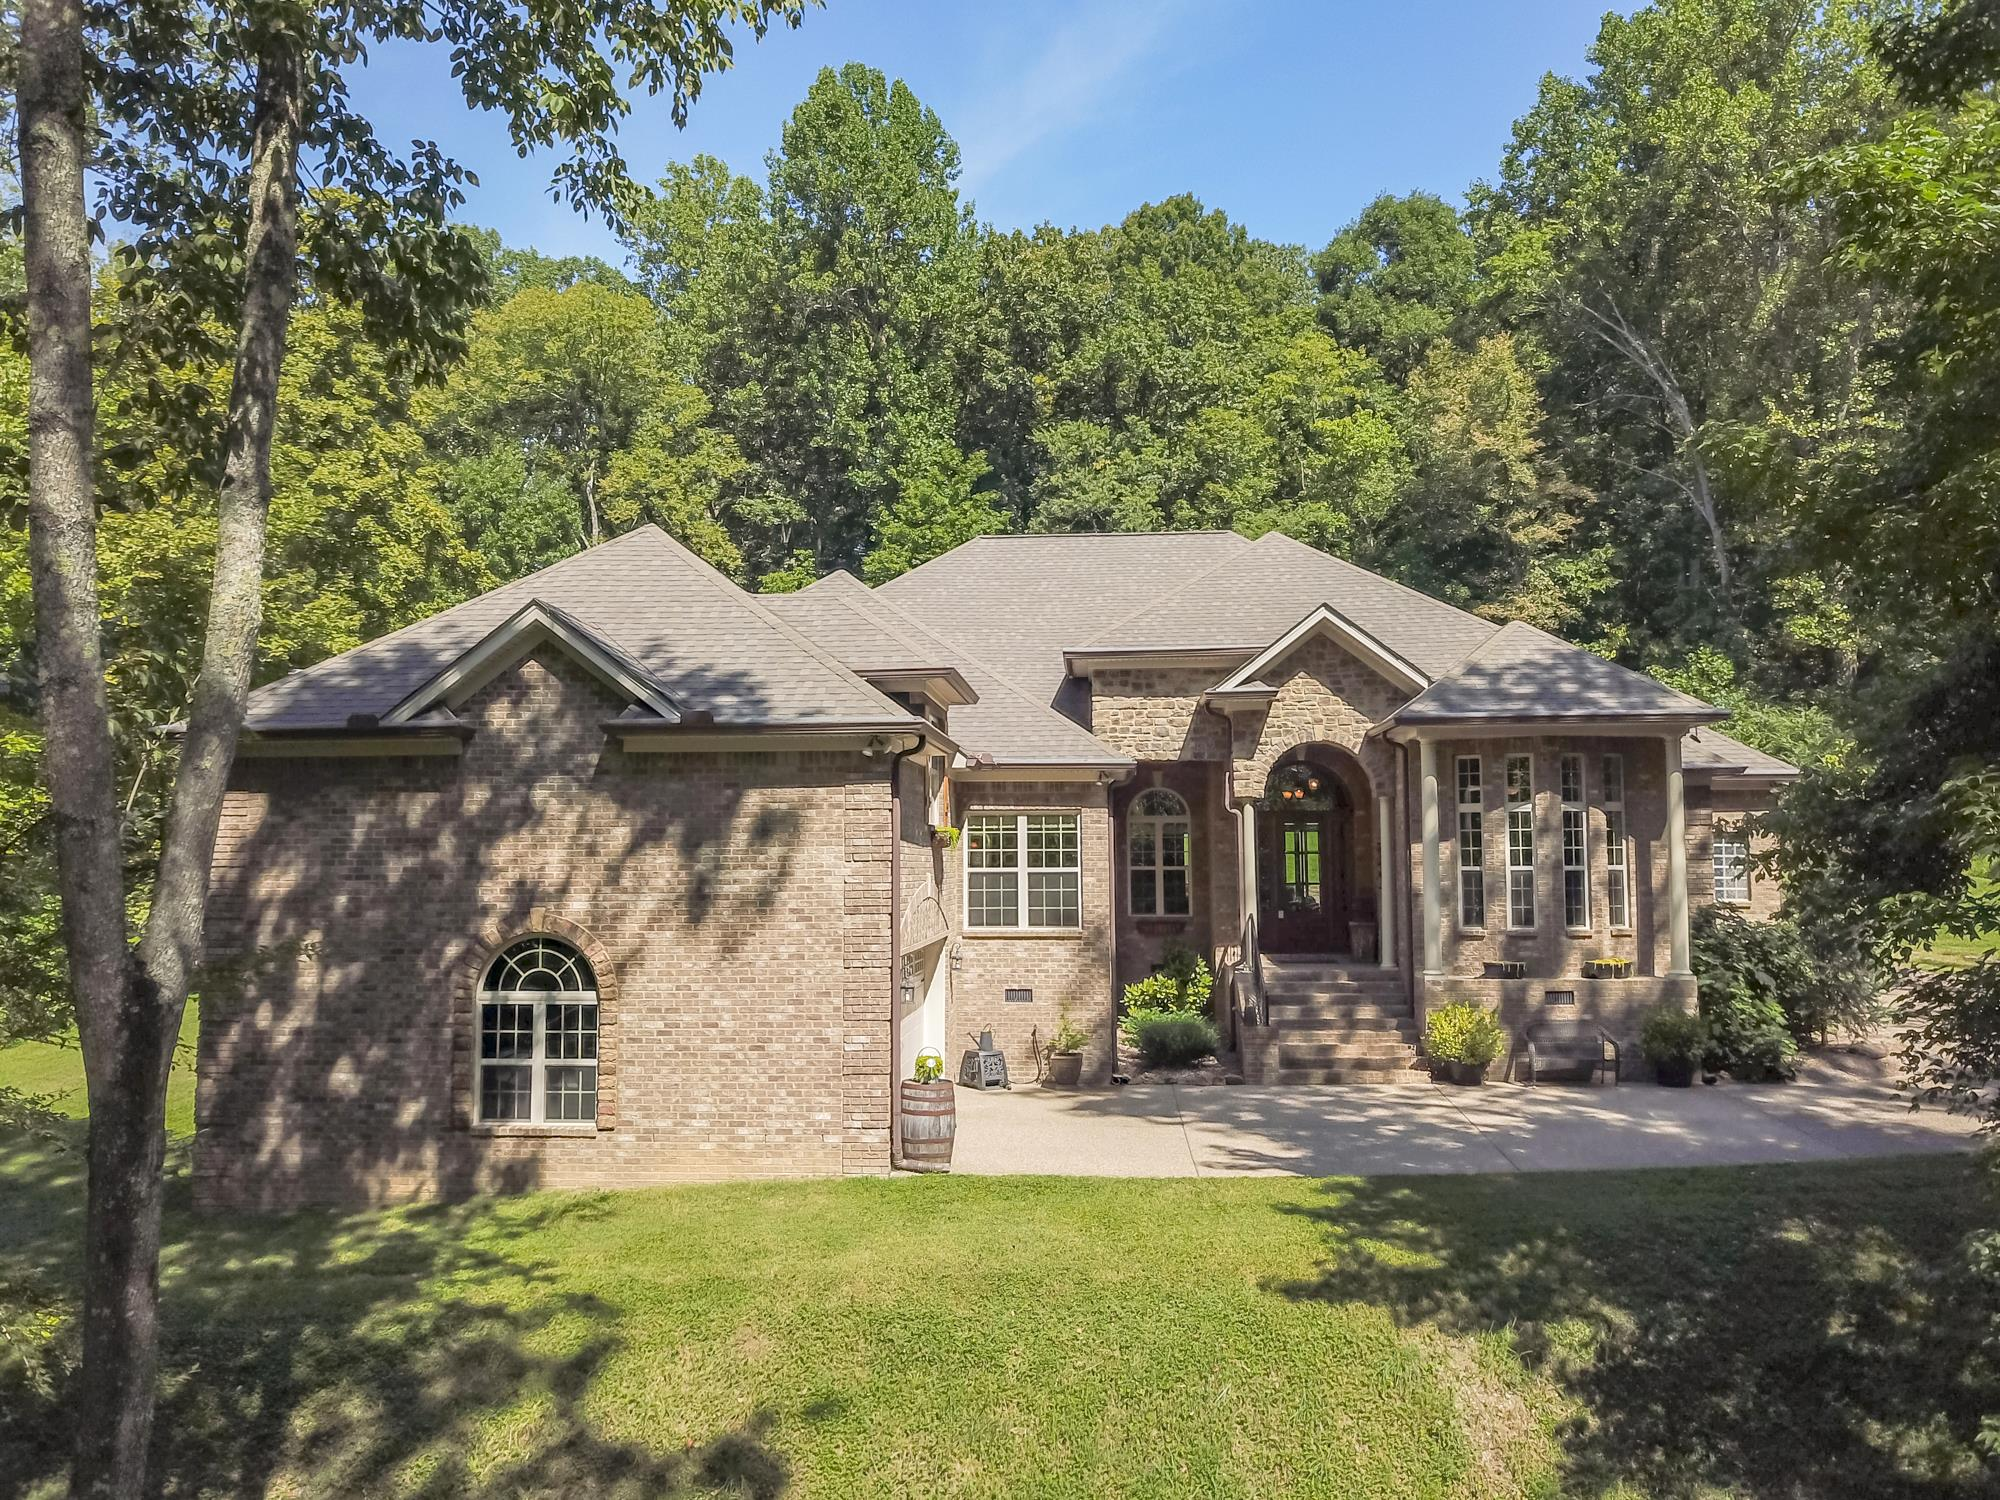 139 Happy Hollow Rd, Goodlettsville, TN 37072 - Goodlettsville, TN real estate listing